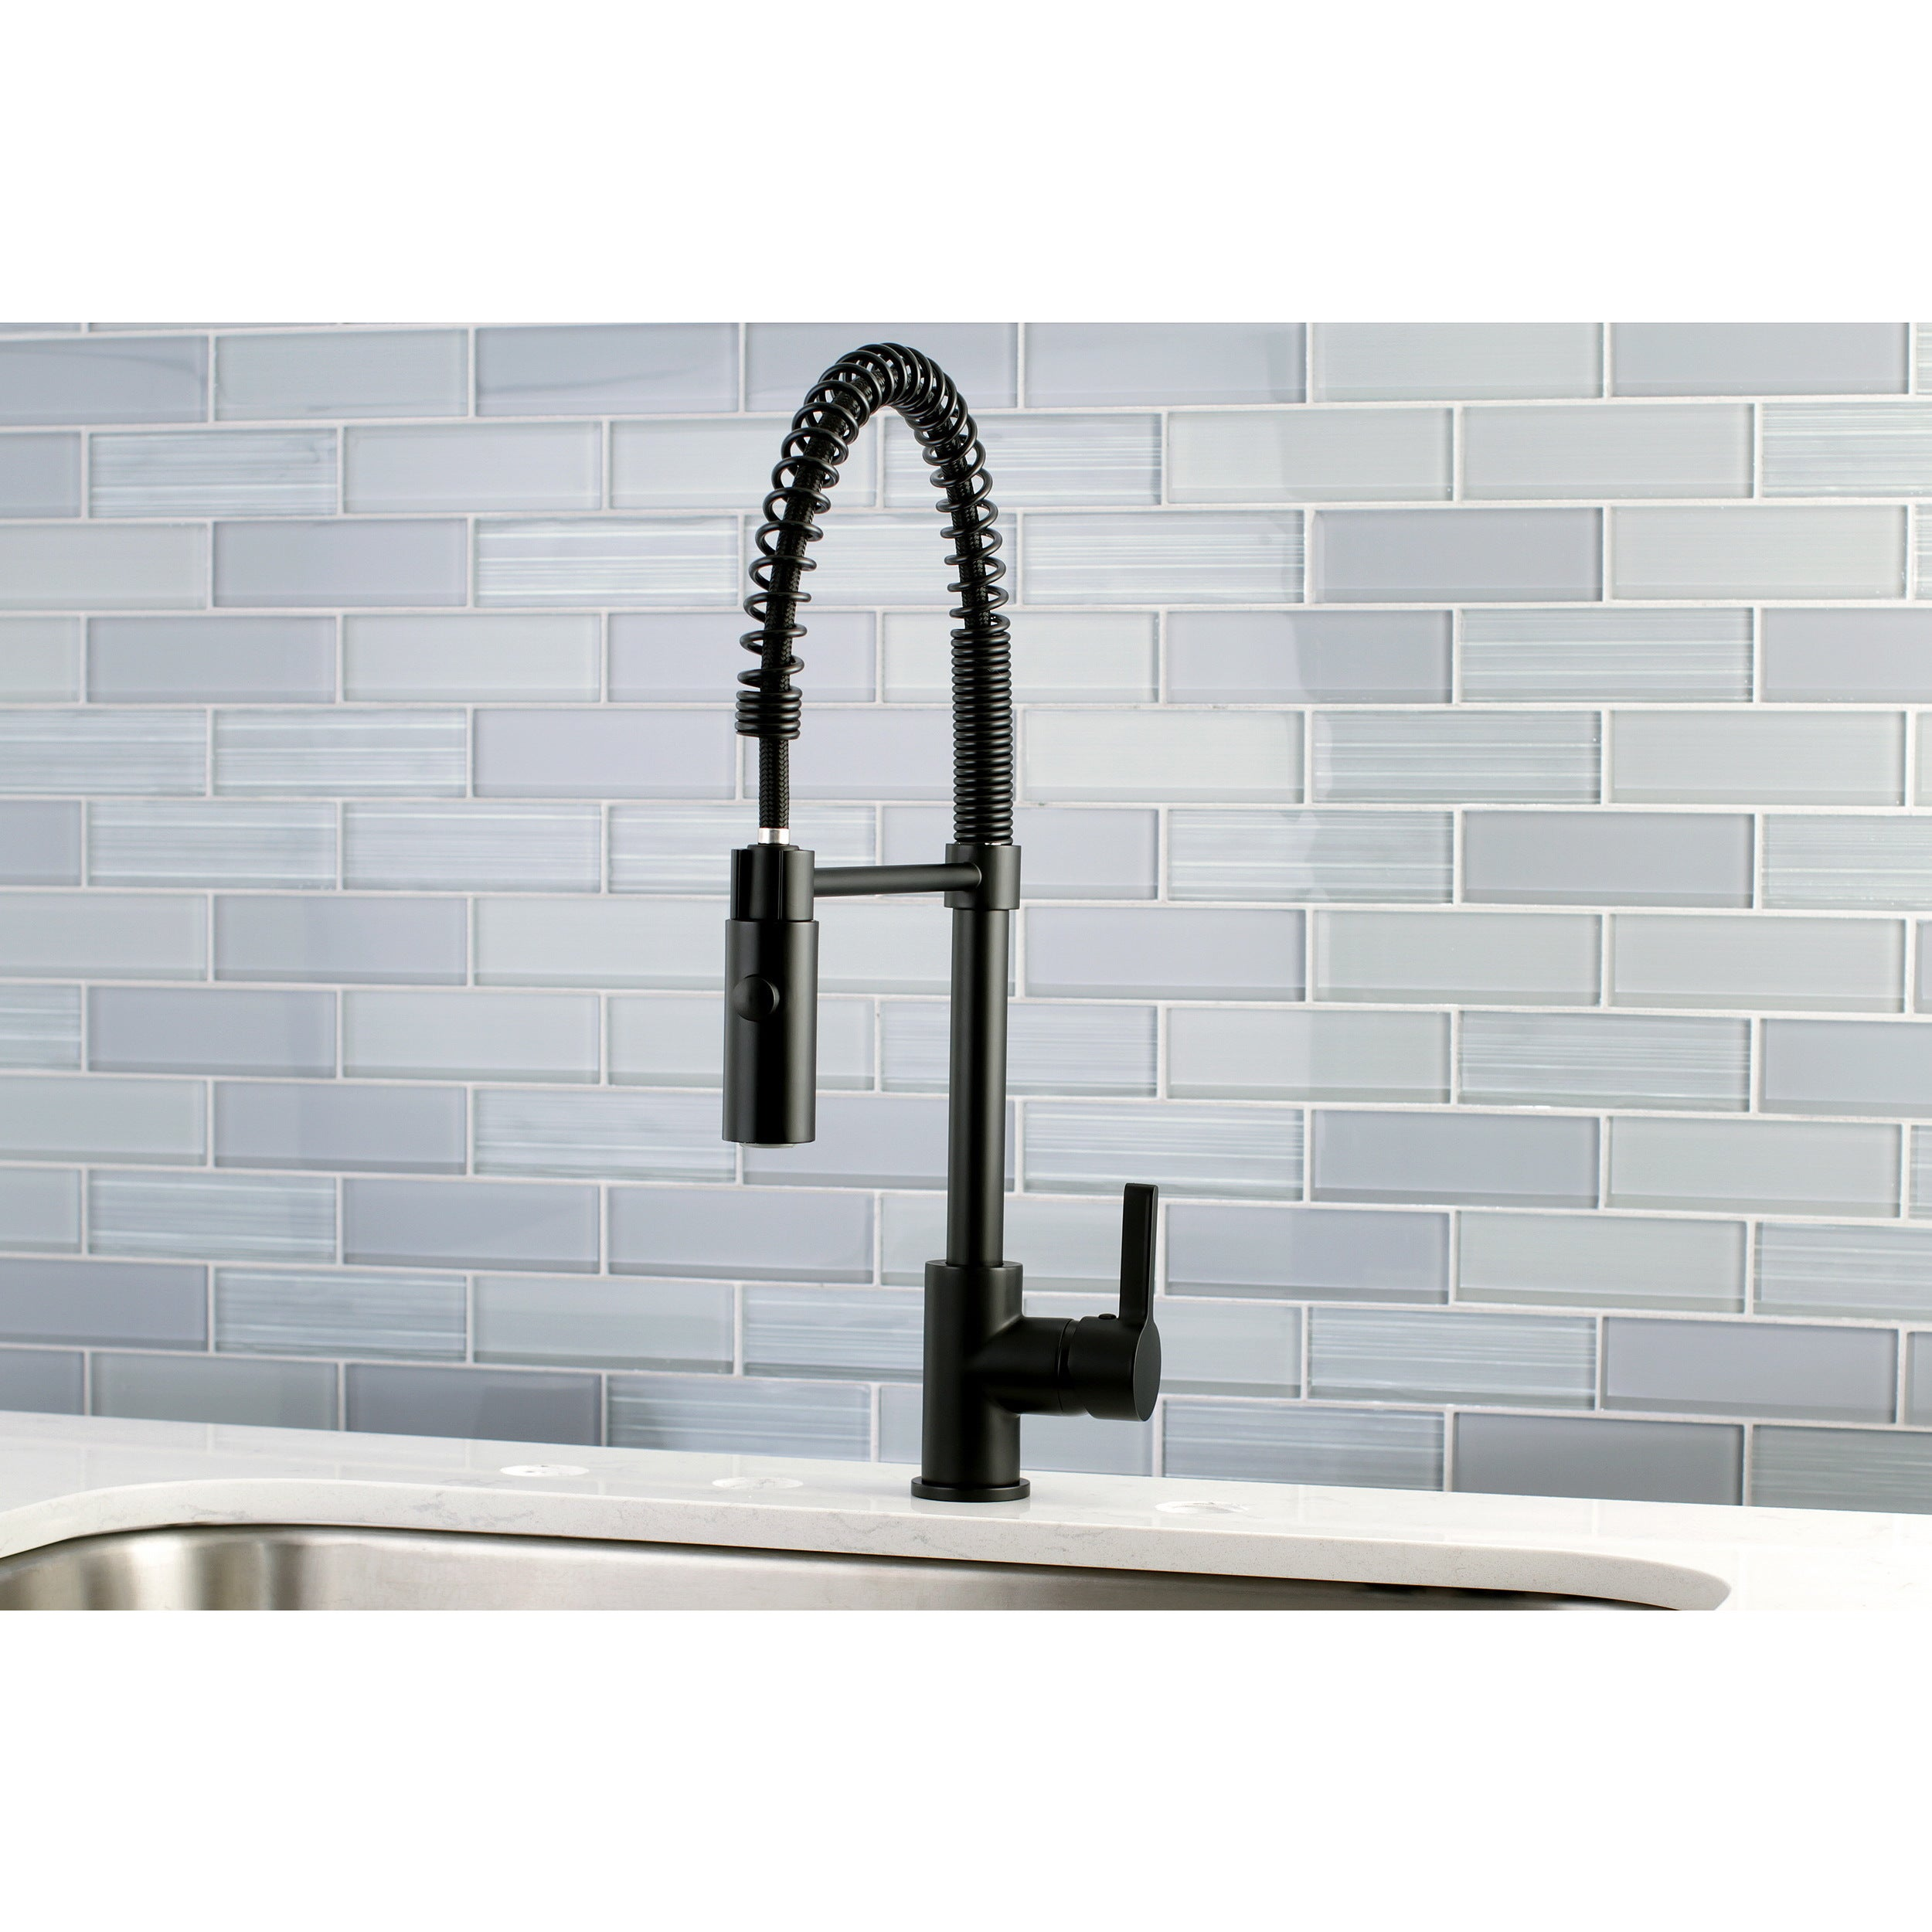 Black Modern Spiral Pulldown Kitchen Faucet